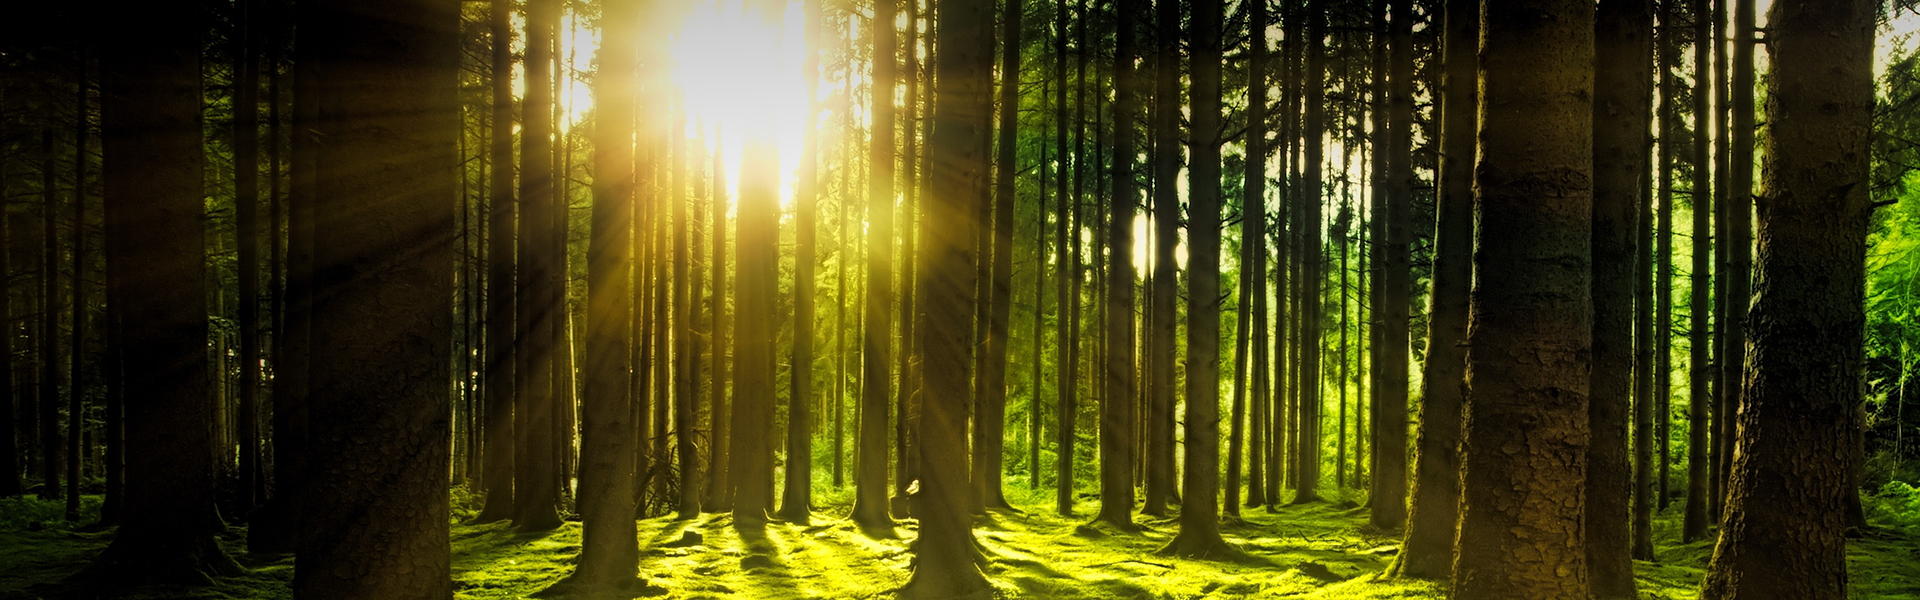 The sun shinning through a forest of pine trees at sunrise